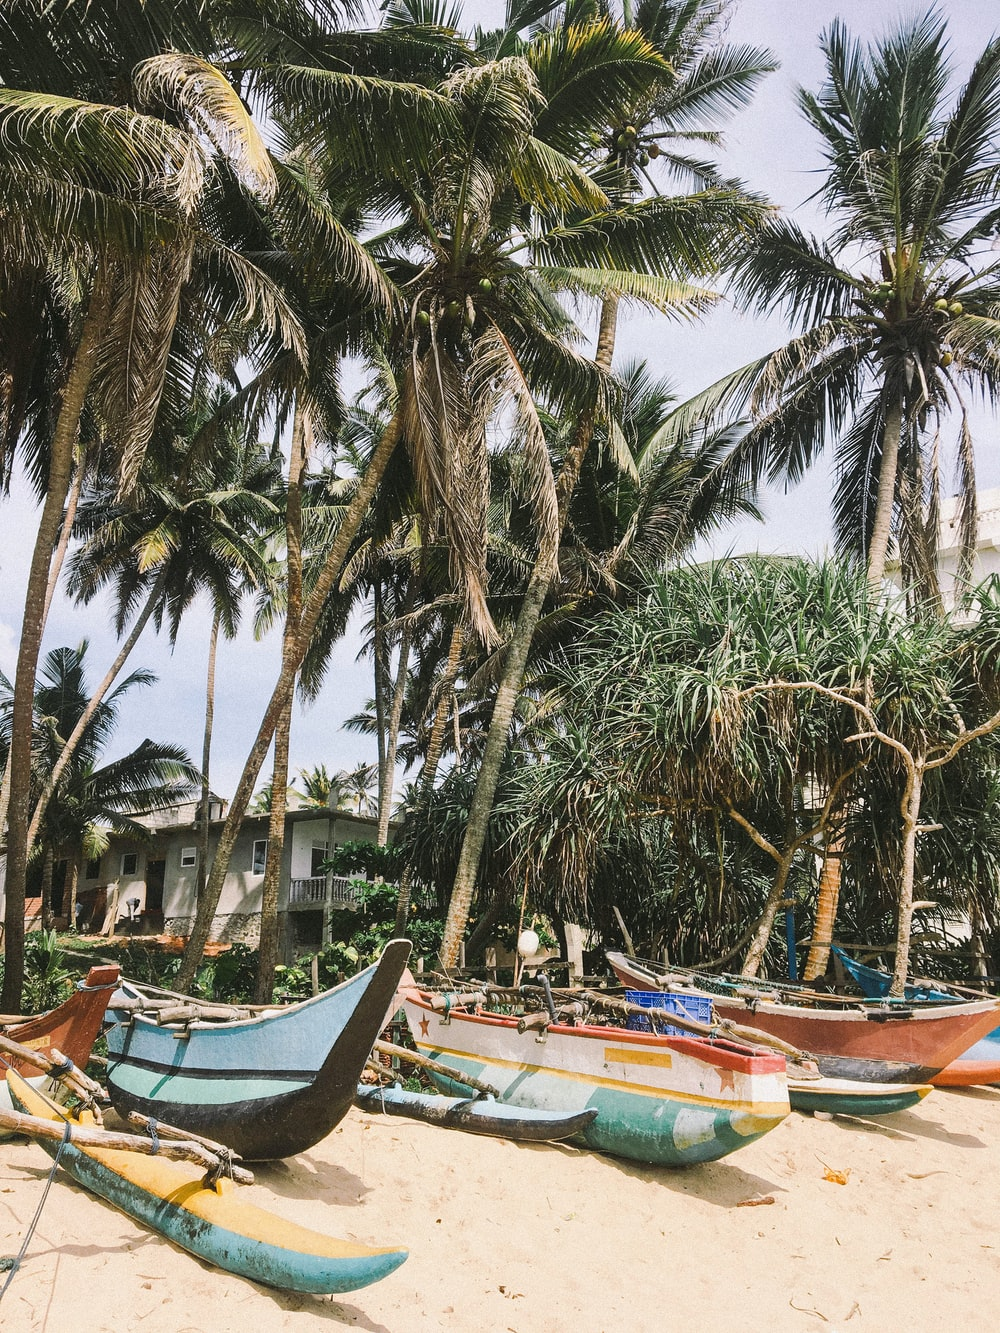 boats under coconut trees